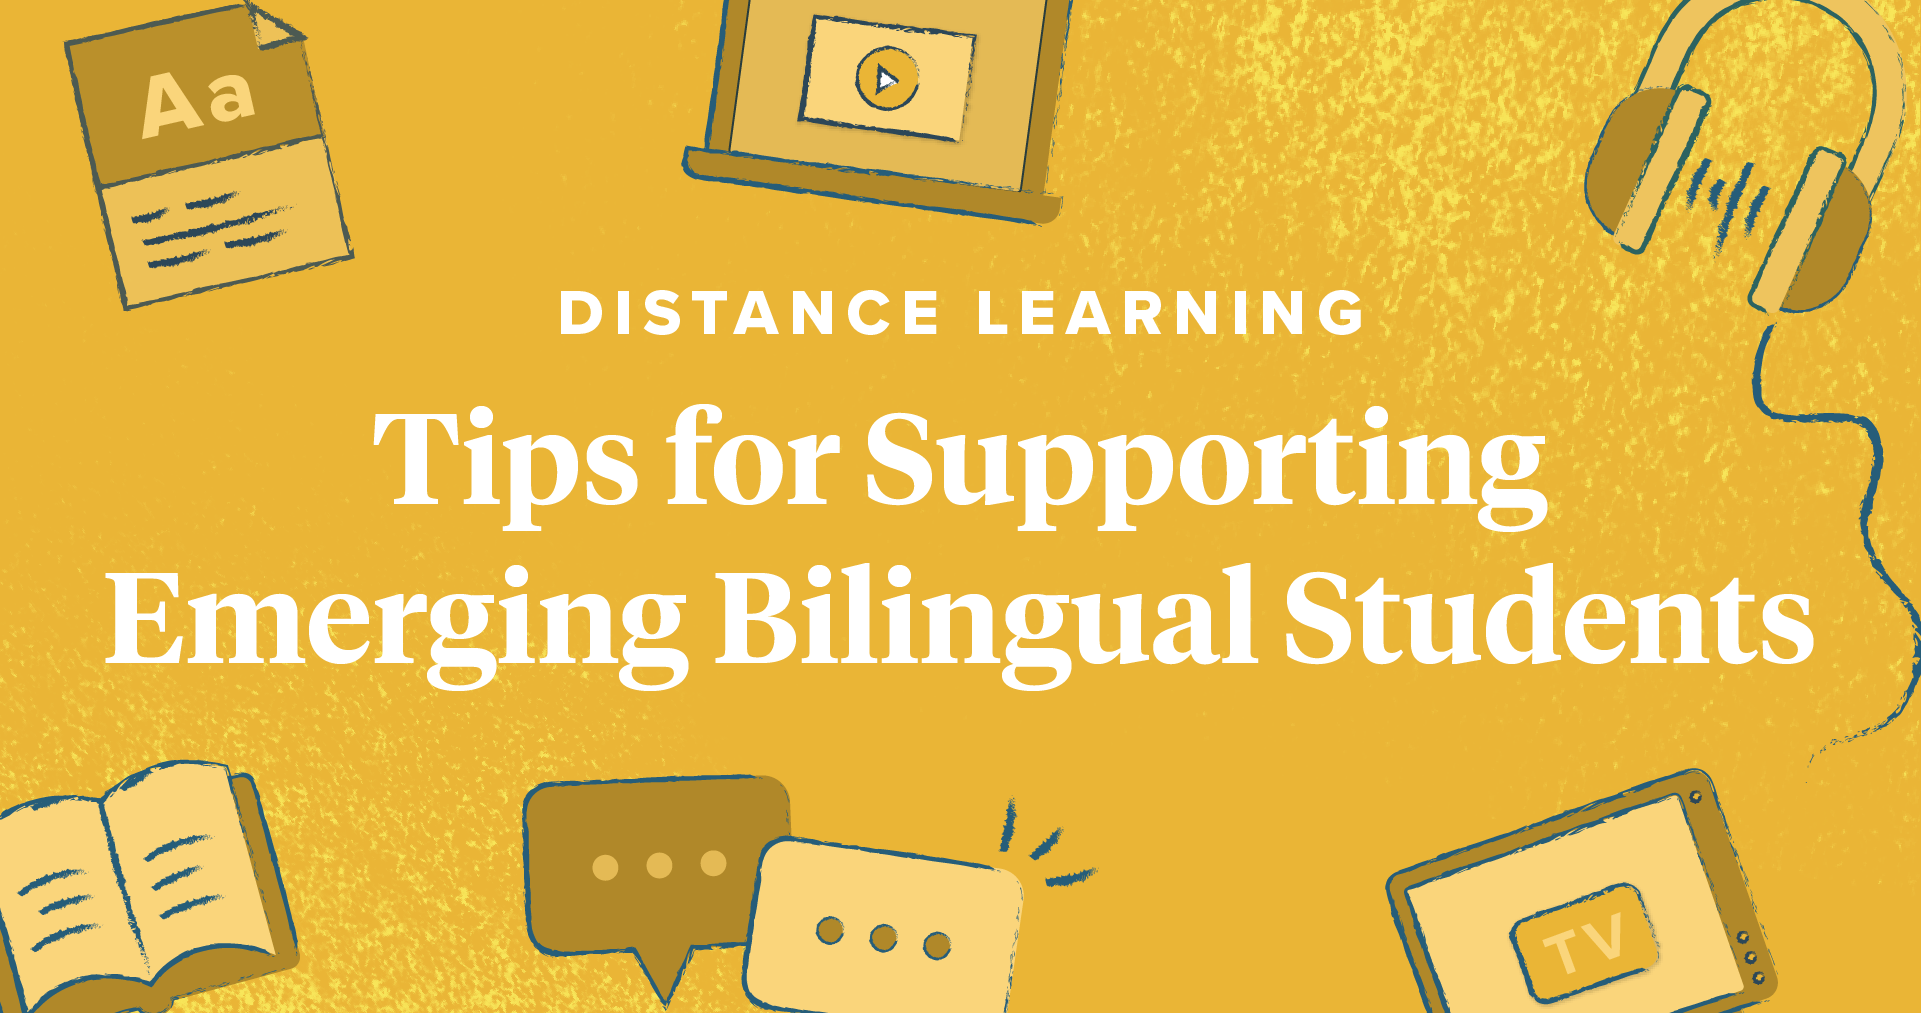 Distance Learning: Tips for Supporting Emerging Bilingual Students